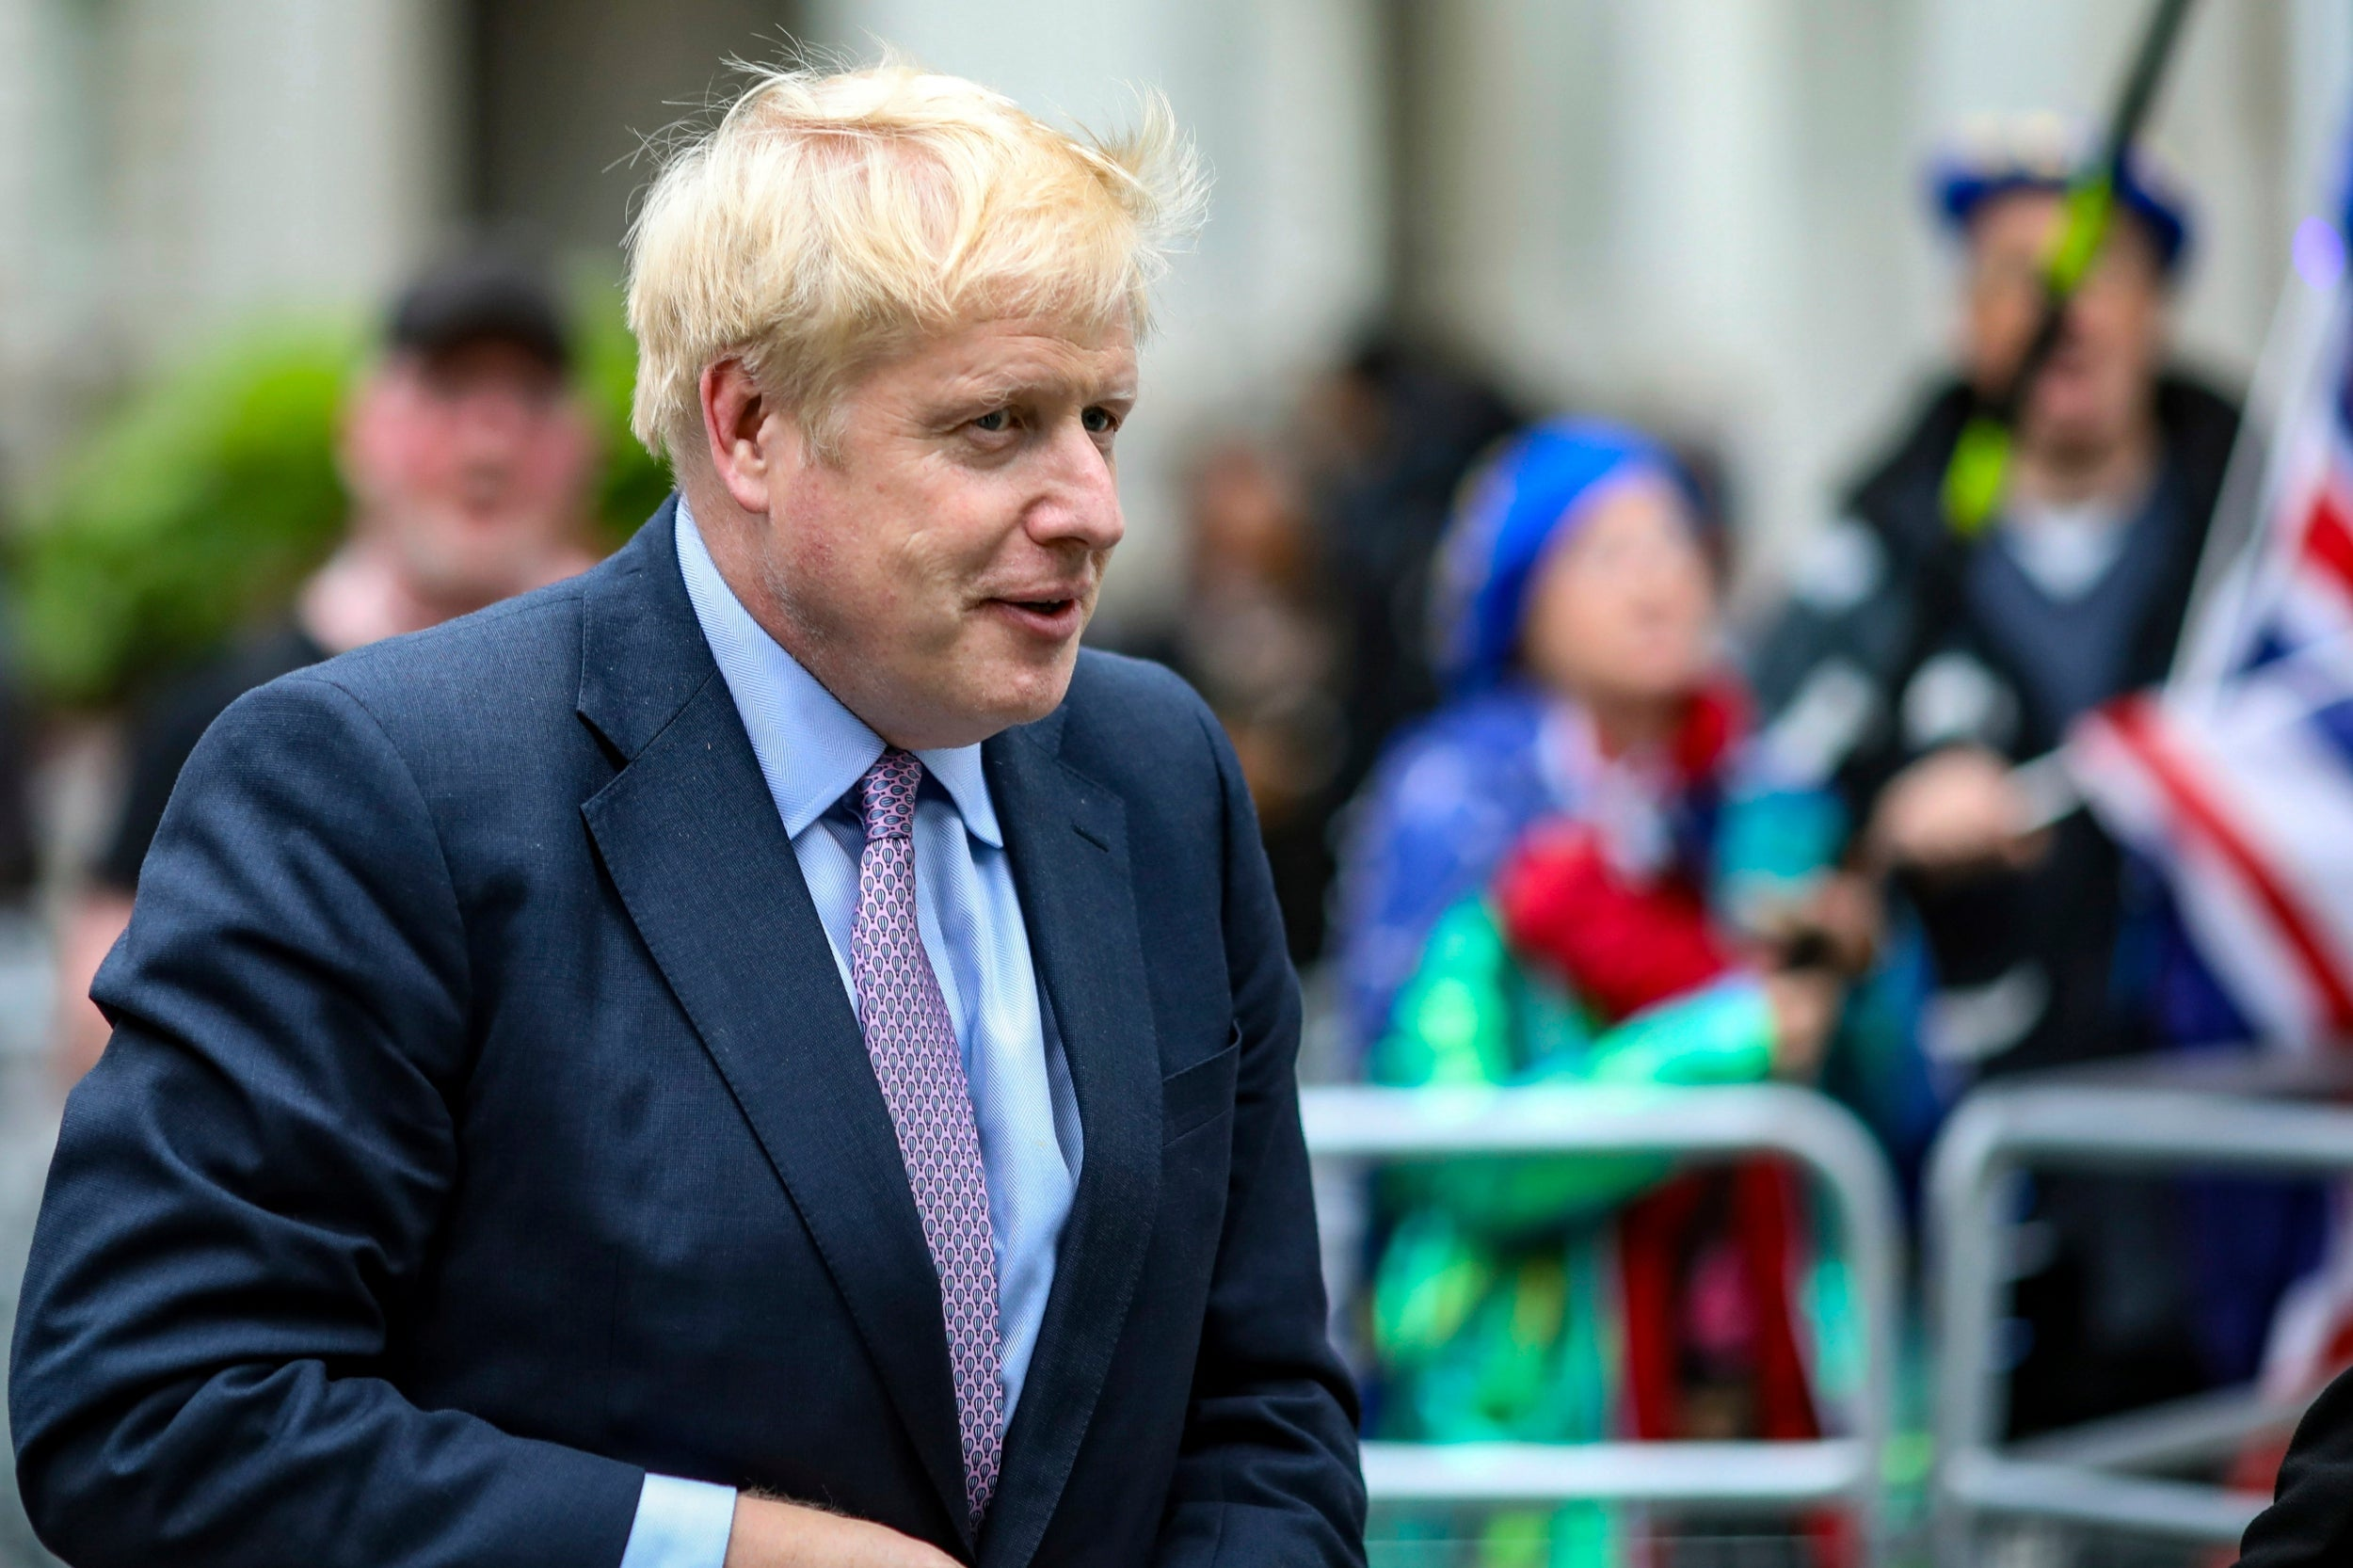 Don't listen to Zac Goldsmith – Boris Johnson doesn't care one bit about the environment